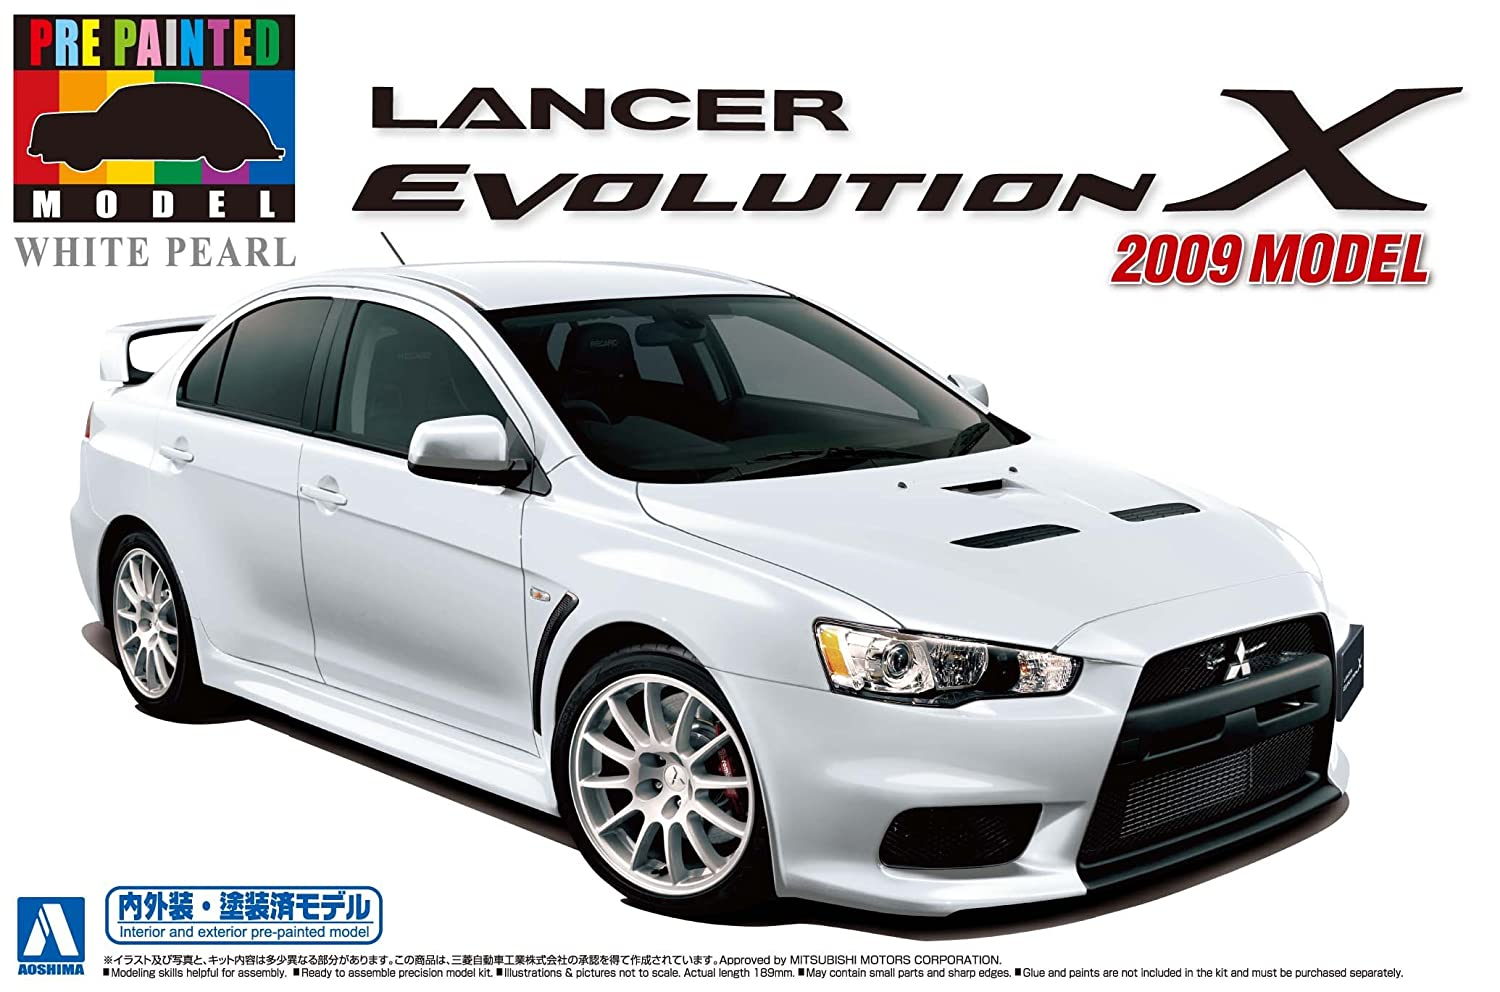 caliente No.28 model Lancer Evolution X 2009 January January January / 24 Pre-Painted Model Series (White Pearl) (japan import)  suministro directo de los fabricantes